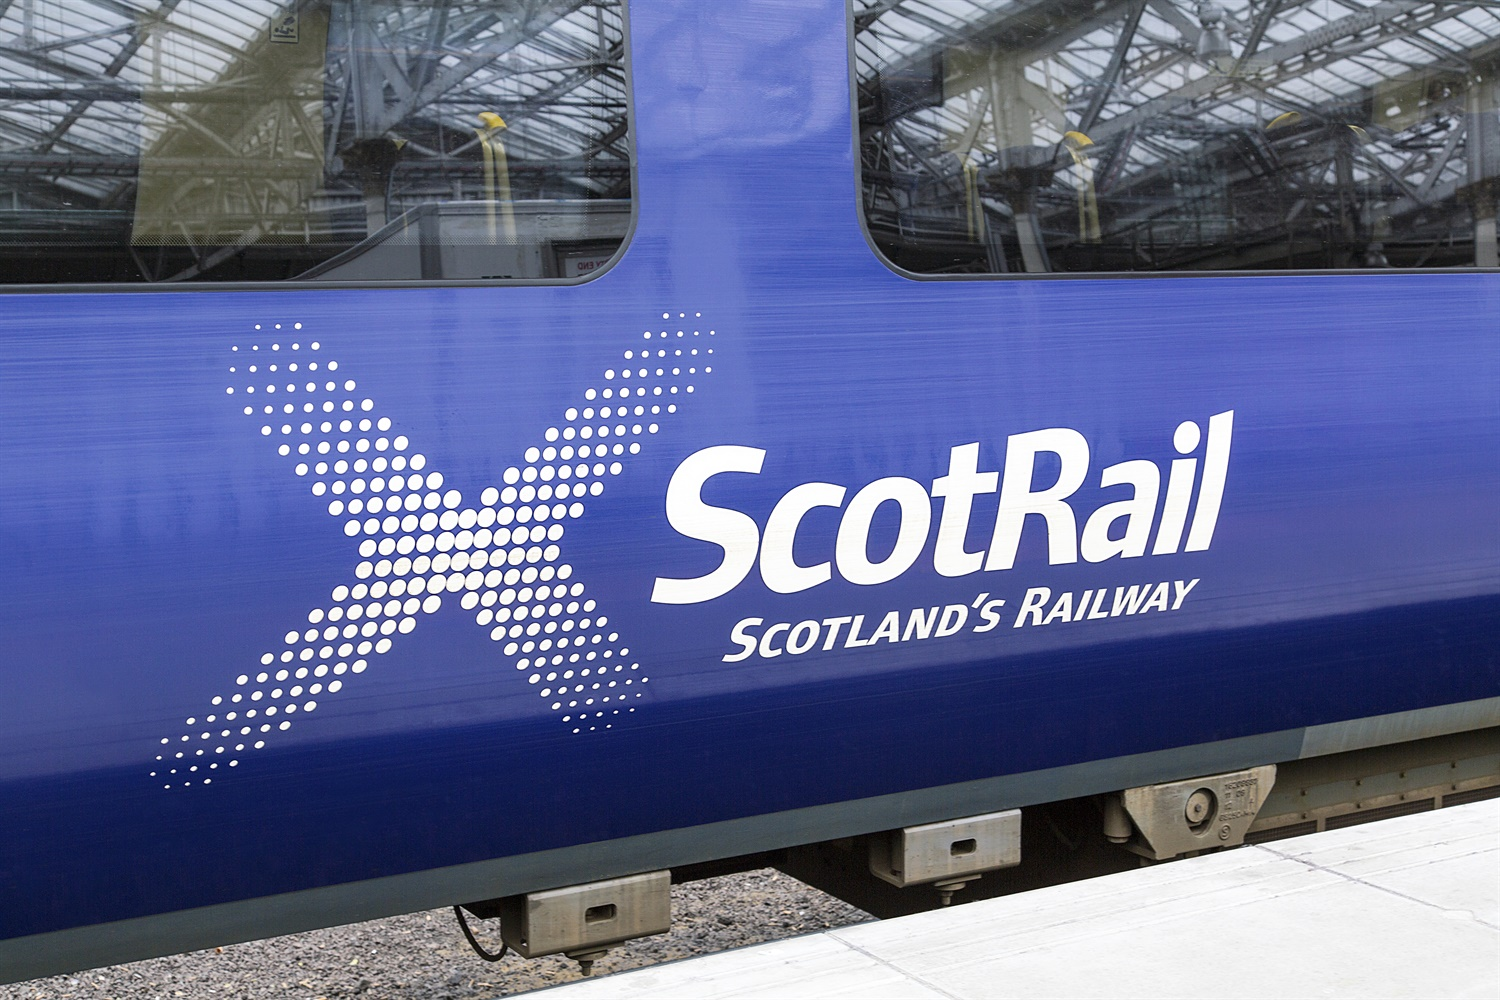 ScotRail 19 month-high for trains running on time